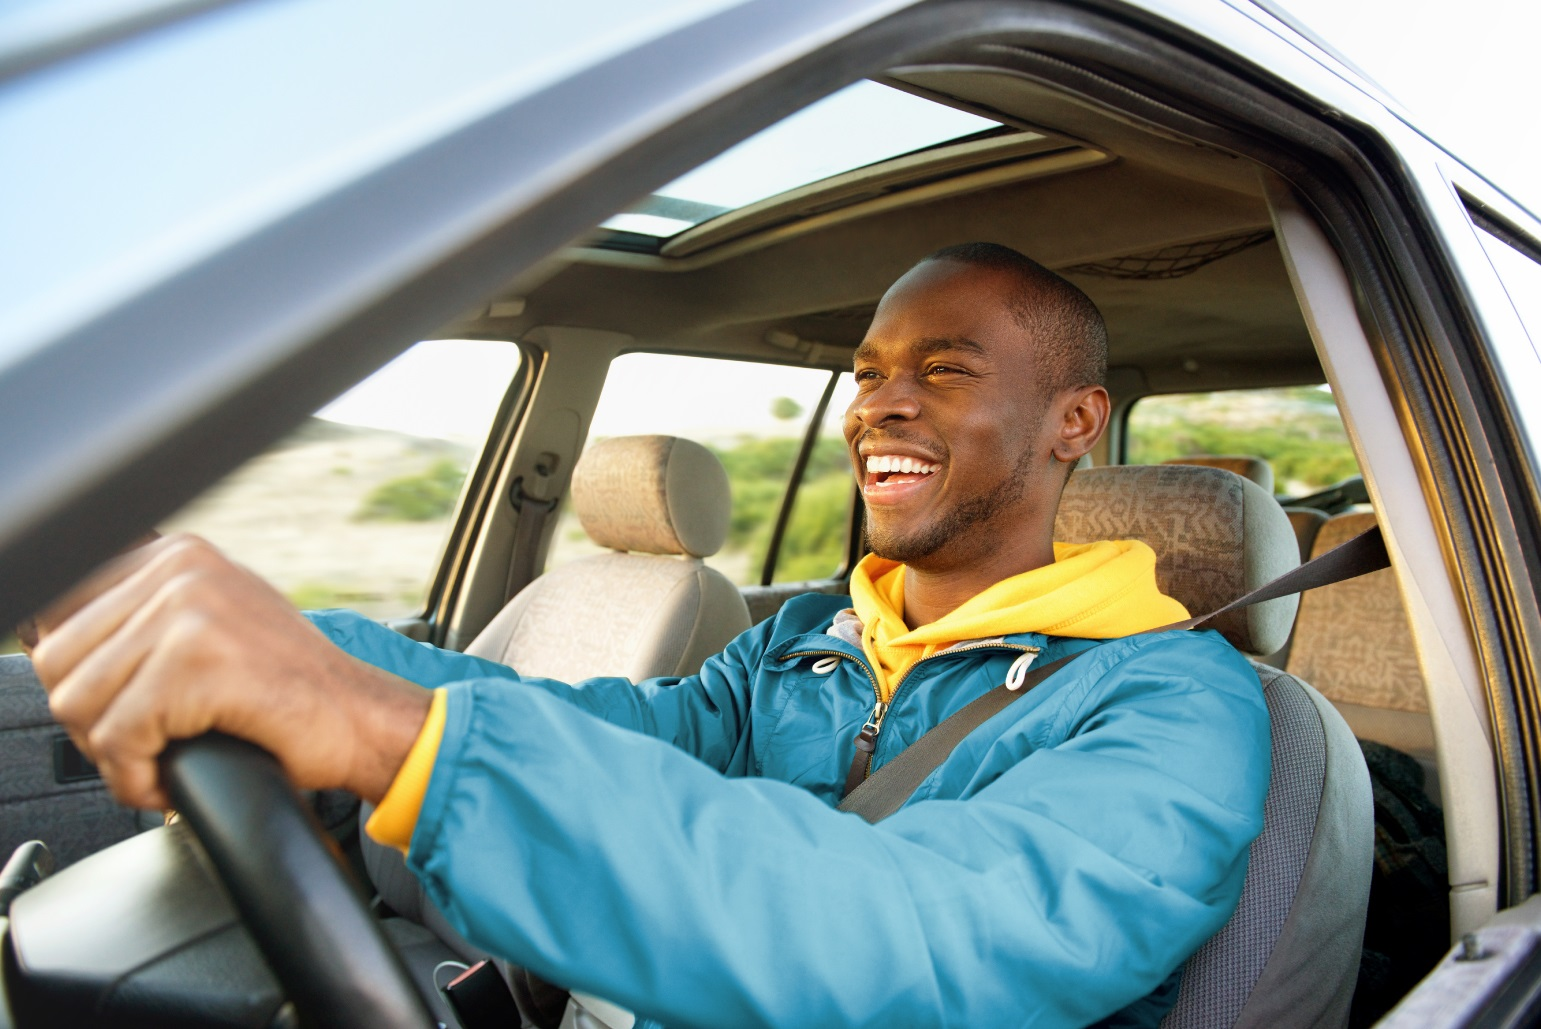 Driver in car purchased with preapproved auto loan